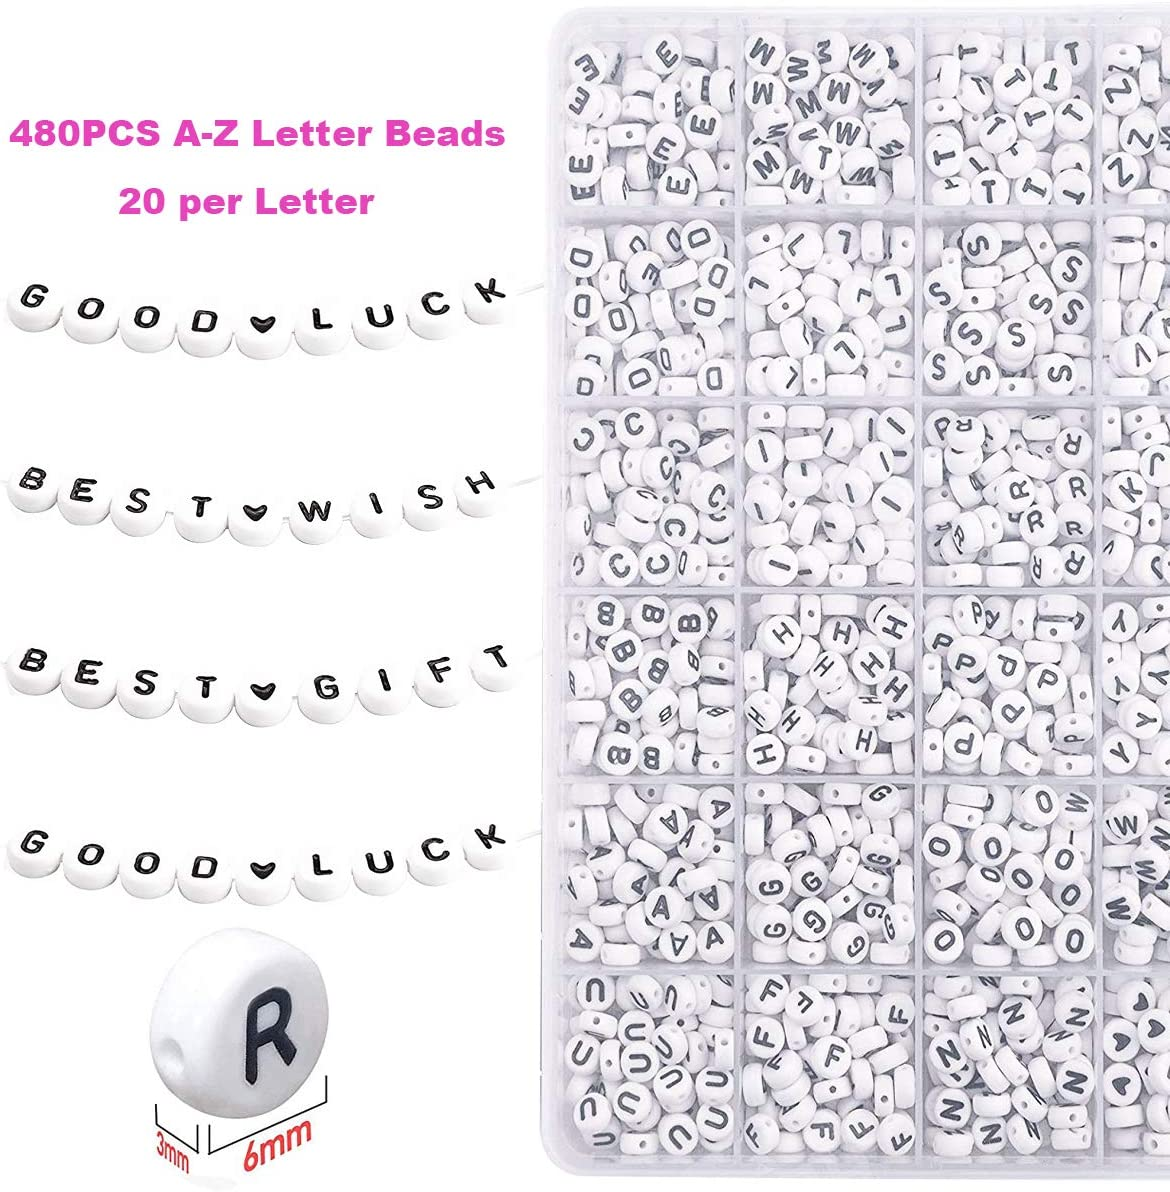 EuTengHao Small Pony Seed Beads Letter Beads Set for Jewelry Bracelets Making with with Two 0.8mm Clear Bracelet String 0.4mm Glass Seed BeadsA-Z Alphabet Letter Beads for Friendship Jewelry Making